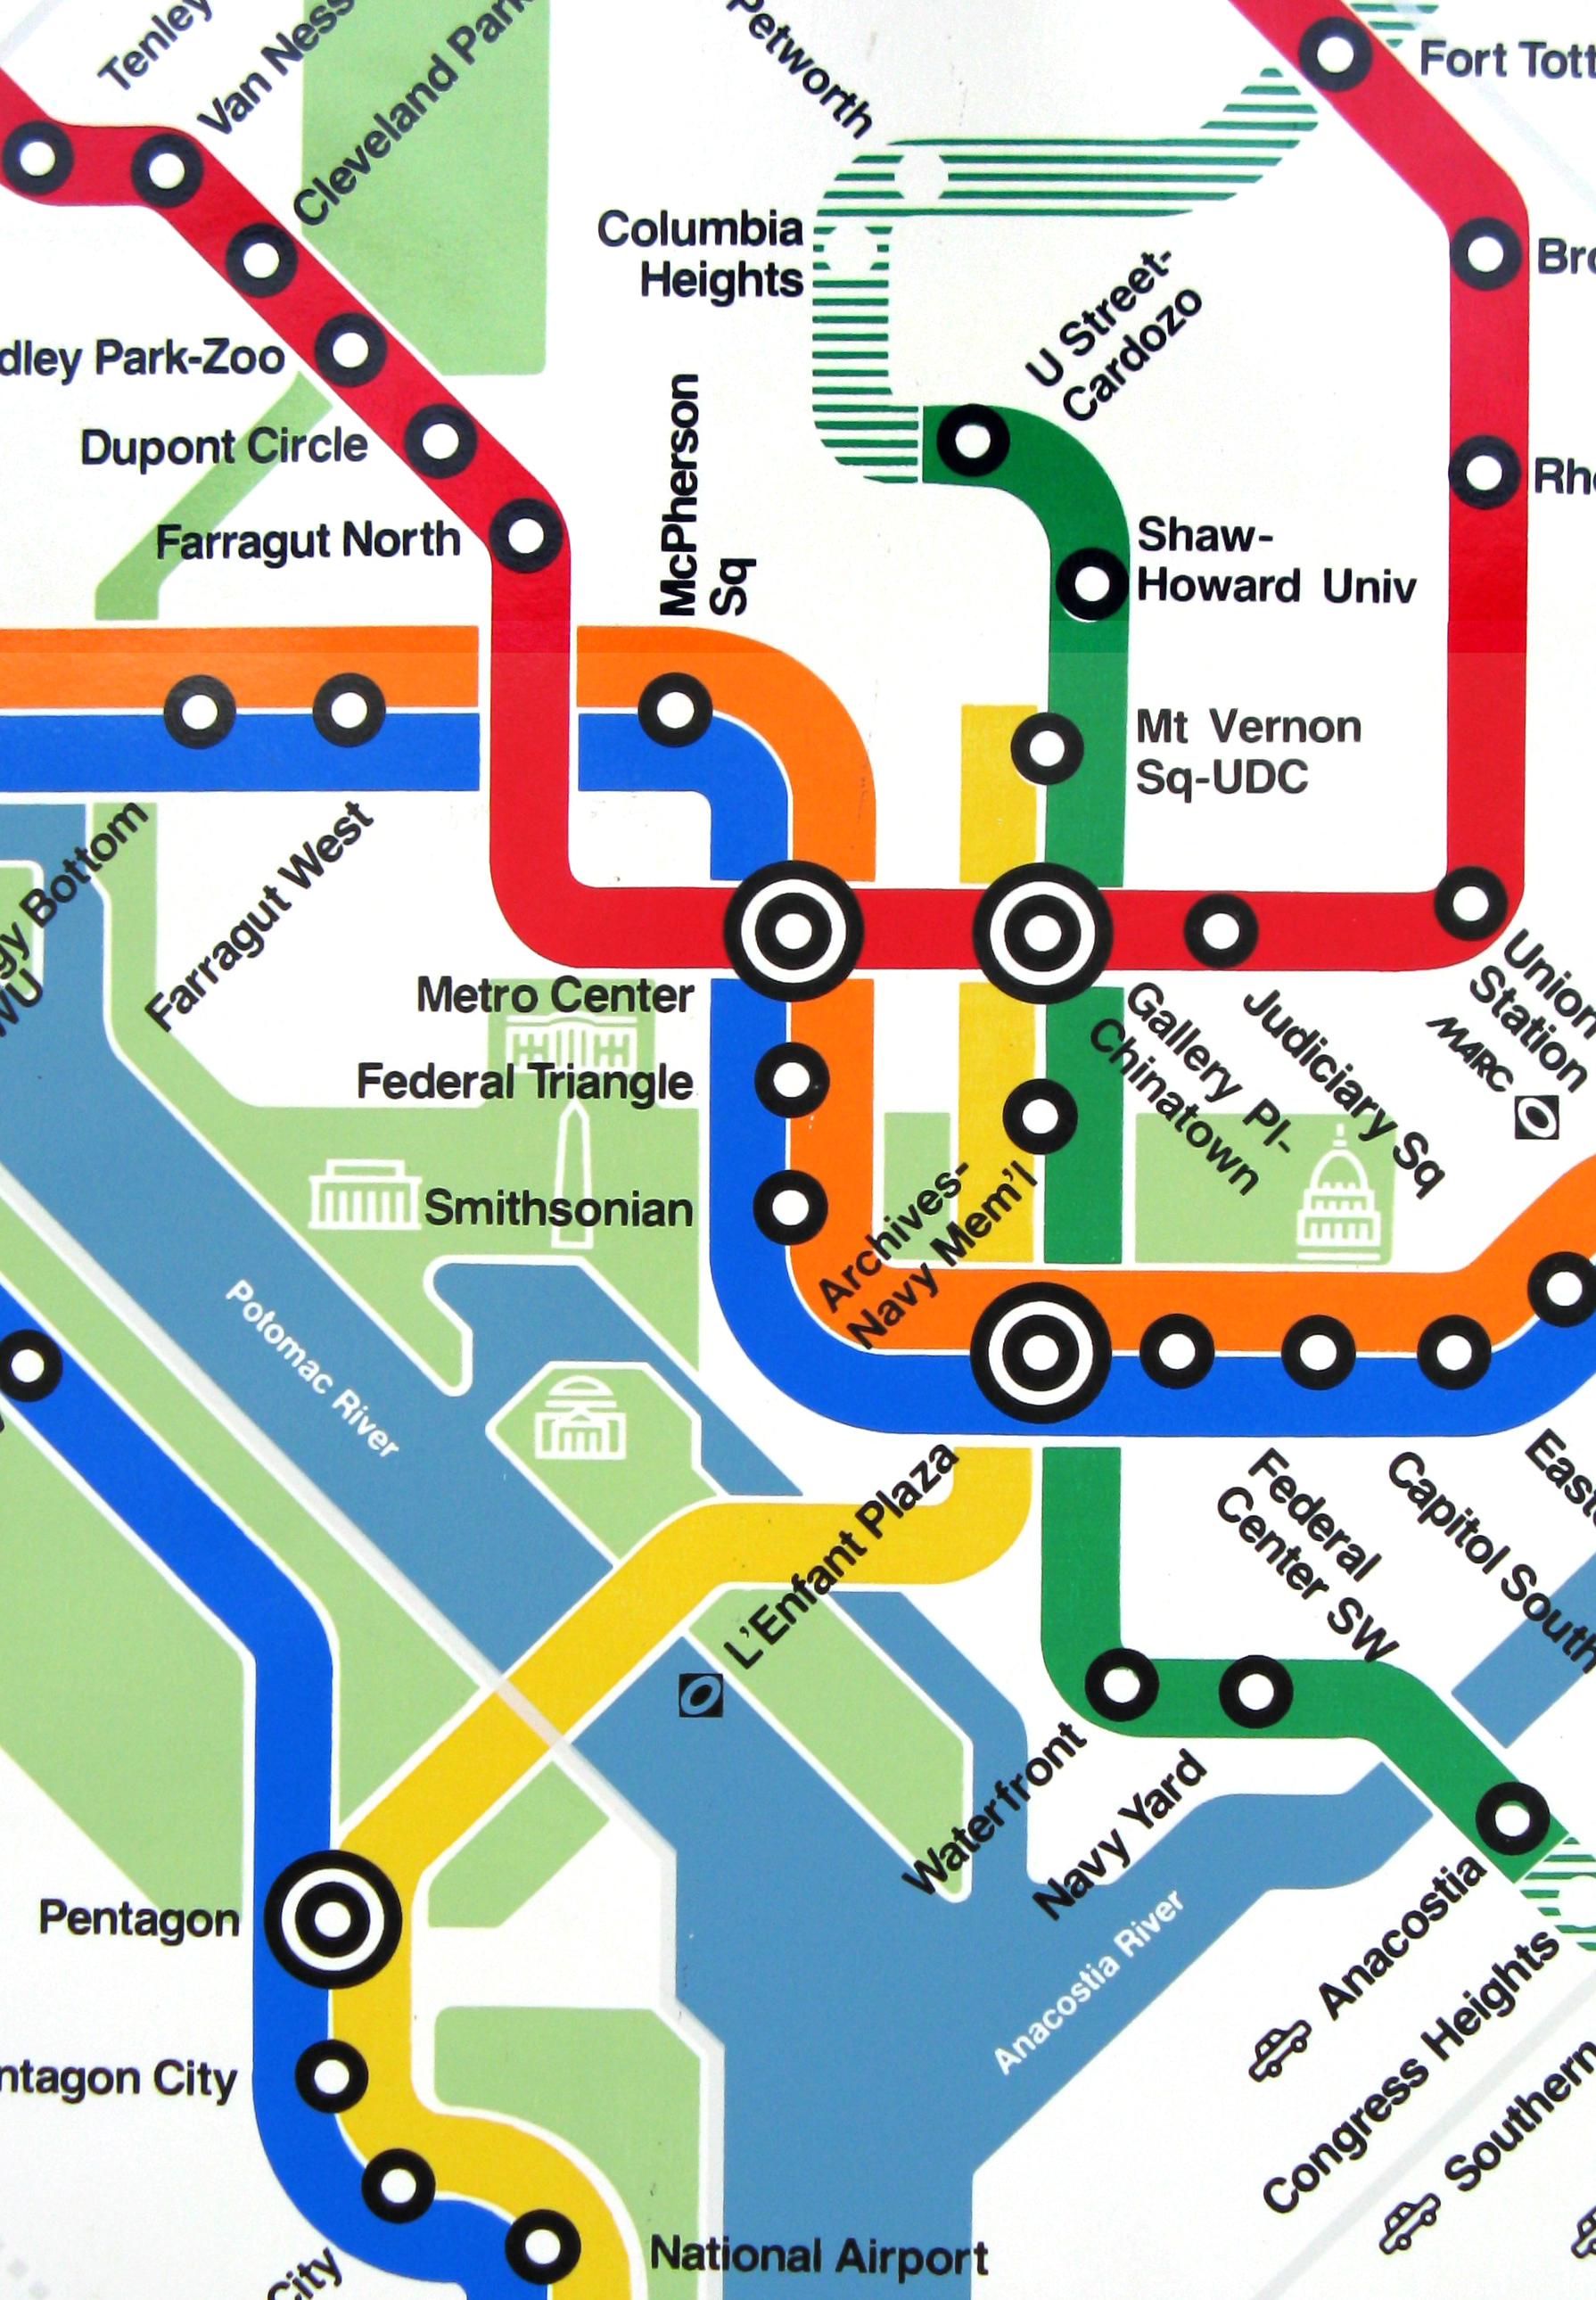 DC Metro Maps on map of the world's fair, map of the river system, map of the navy yard, map of the statue of liberty, map of bus system, map of the university campus, map of the harlem renaissance, map of the city, map of the supreme court, map of the tri-state area, map of the sewers,